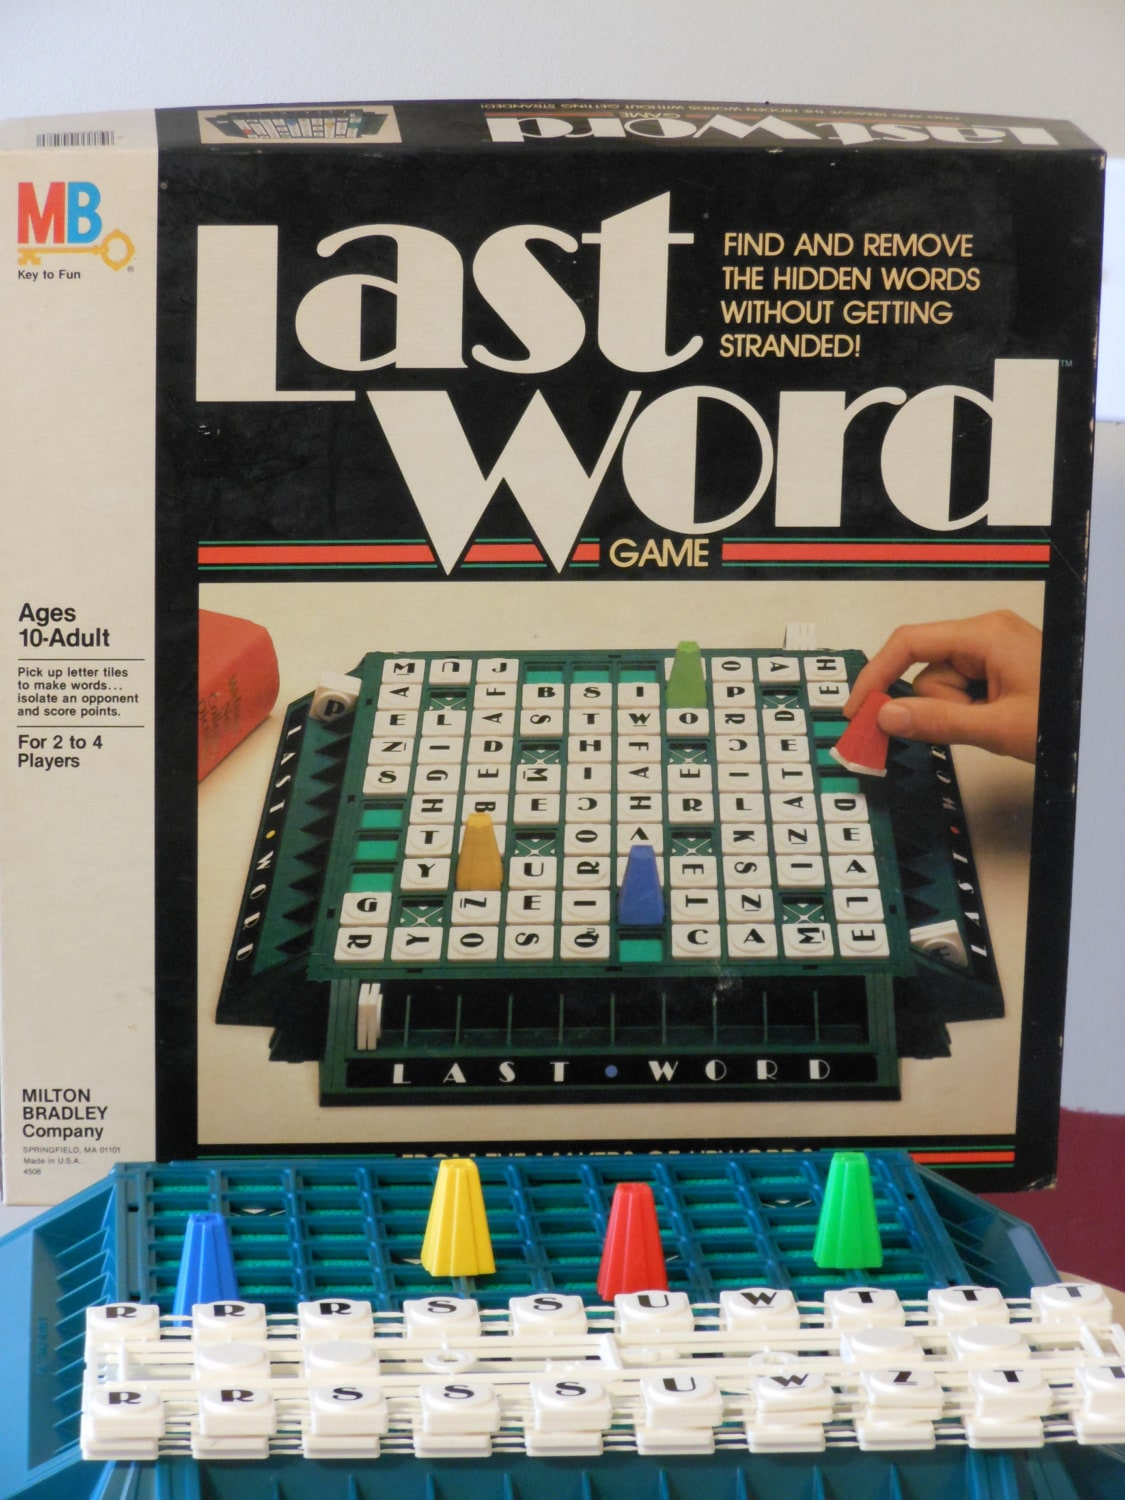 Last word game instructions